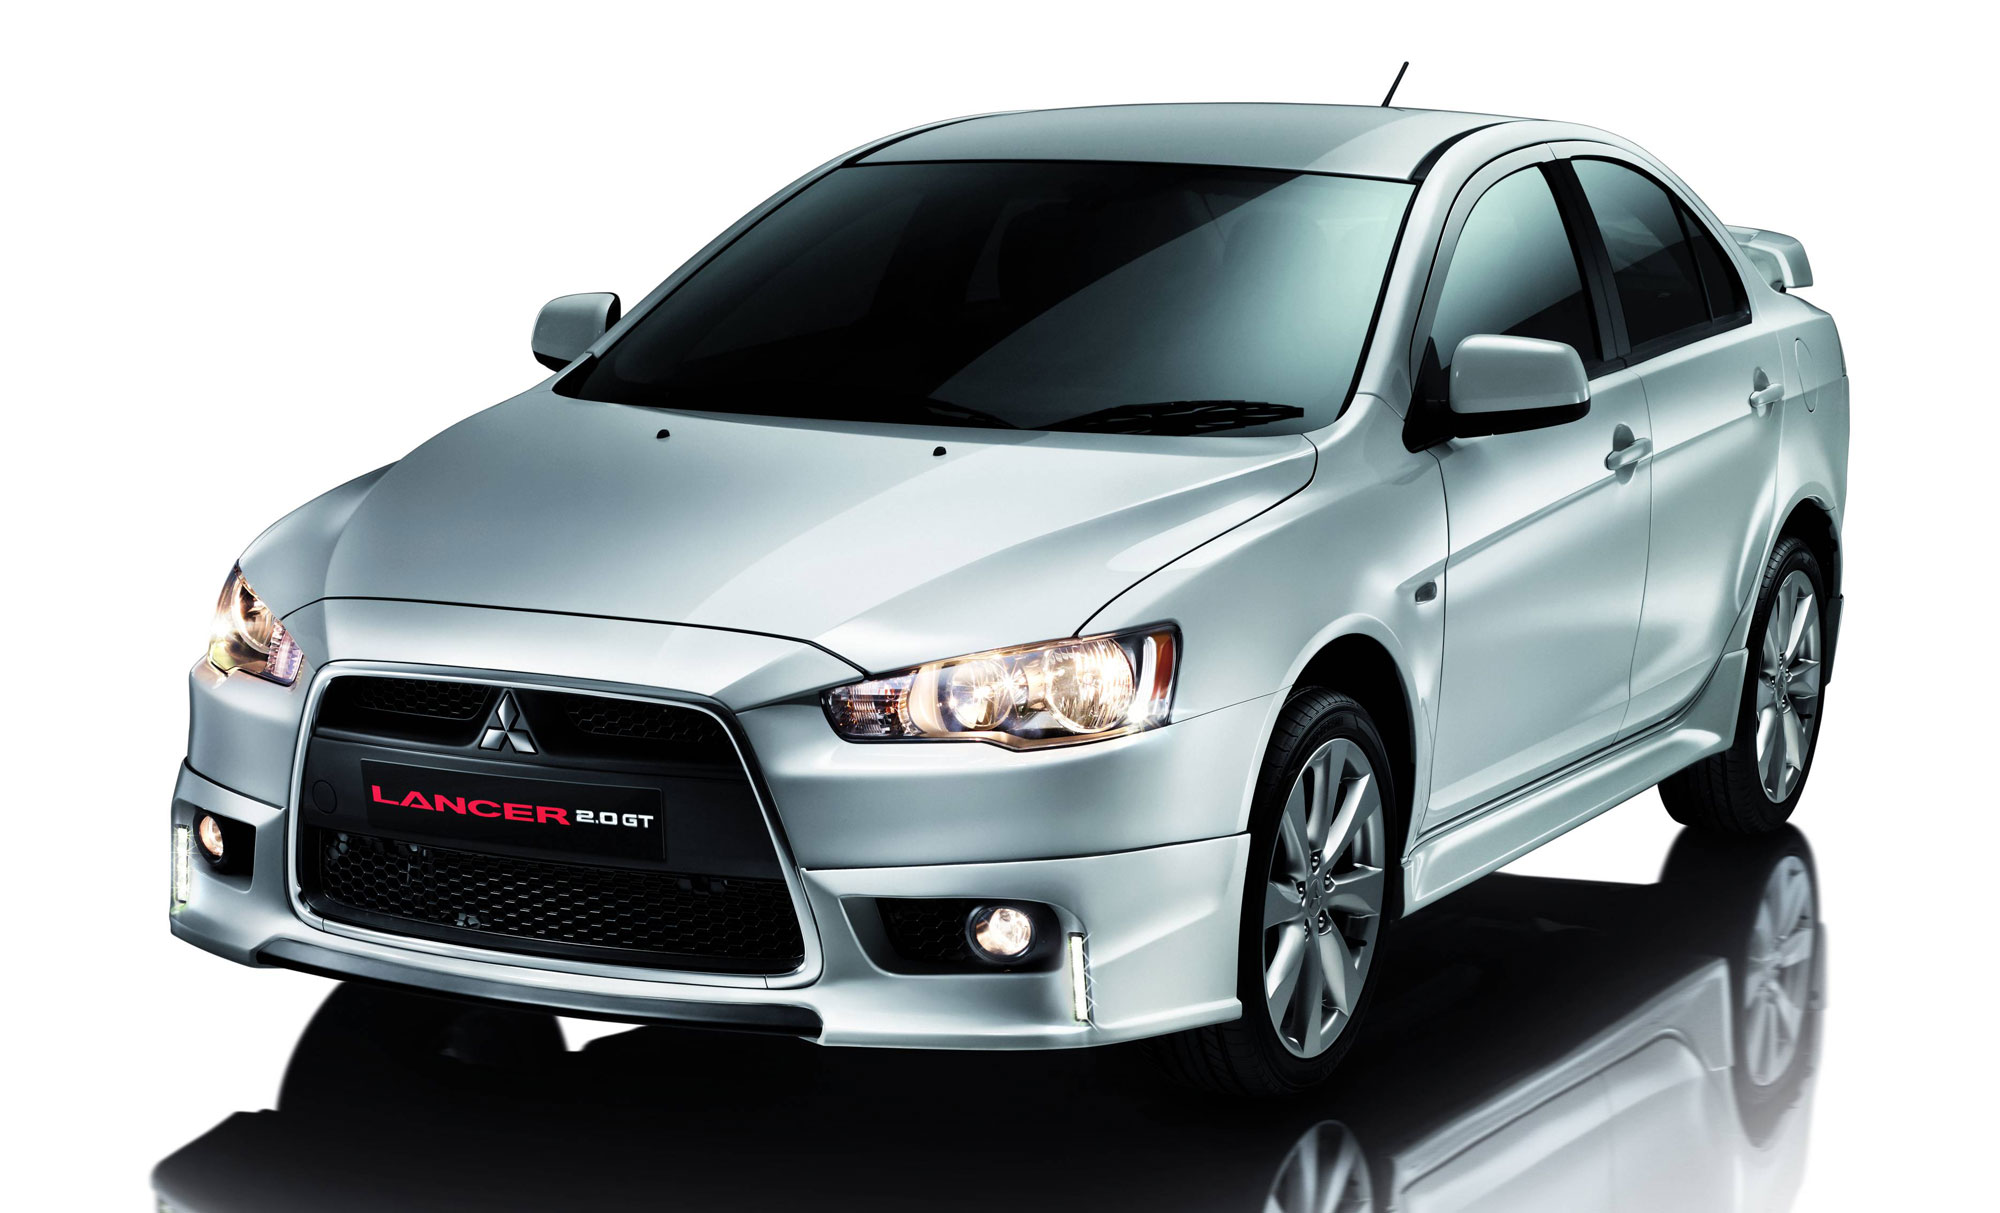 mitsubishi lancer 2 0 gt updated in malaysia. Black Bedroom Furniture Sets. Home Design Ideas